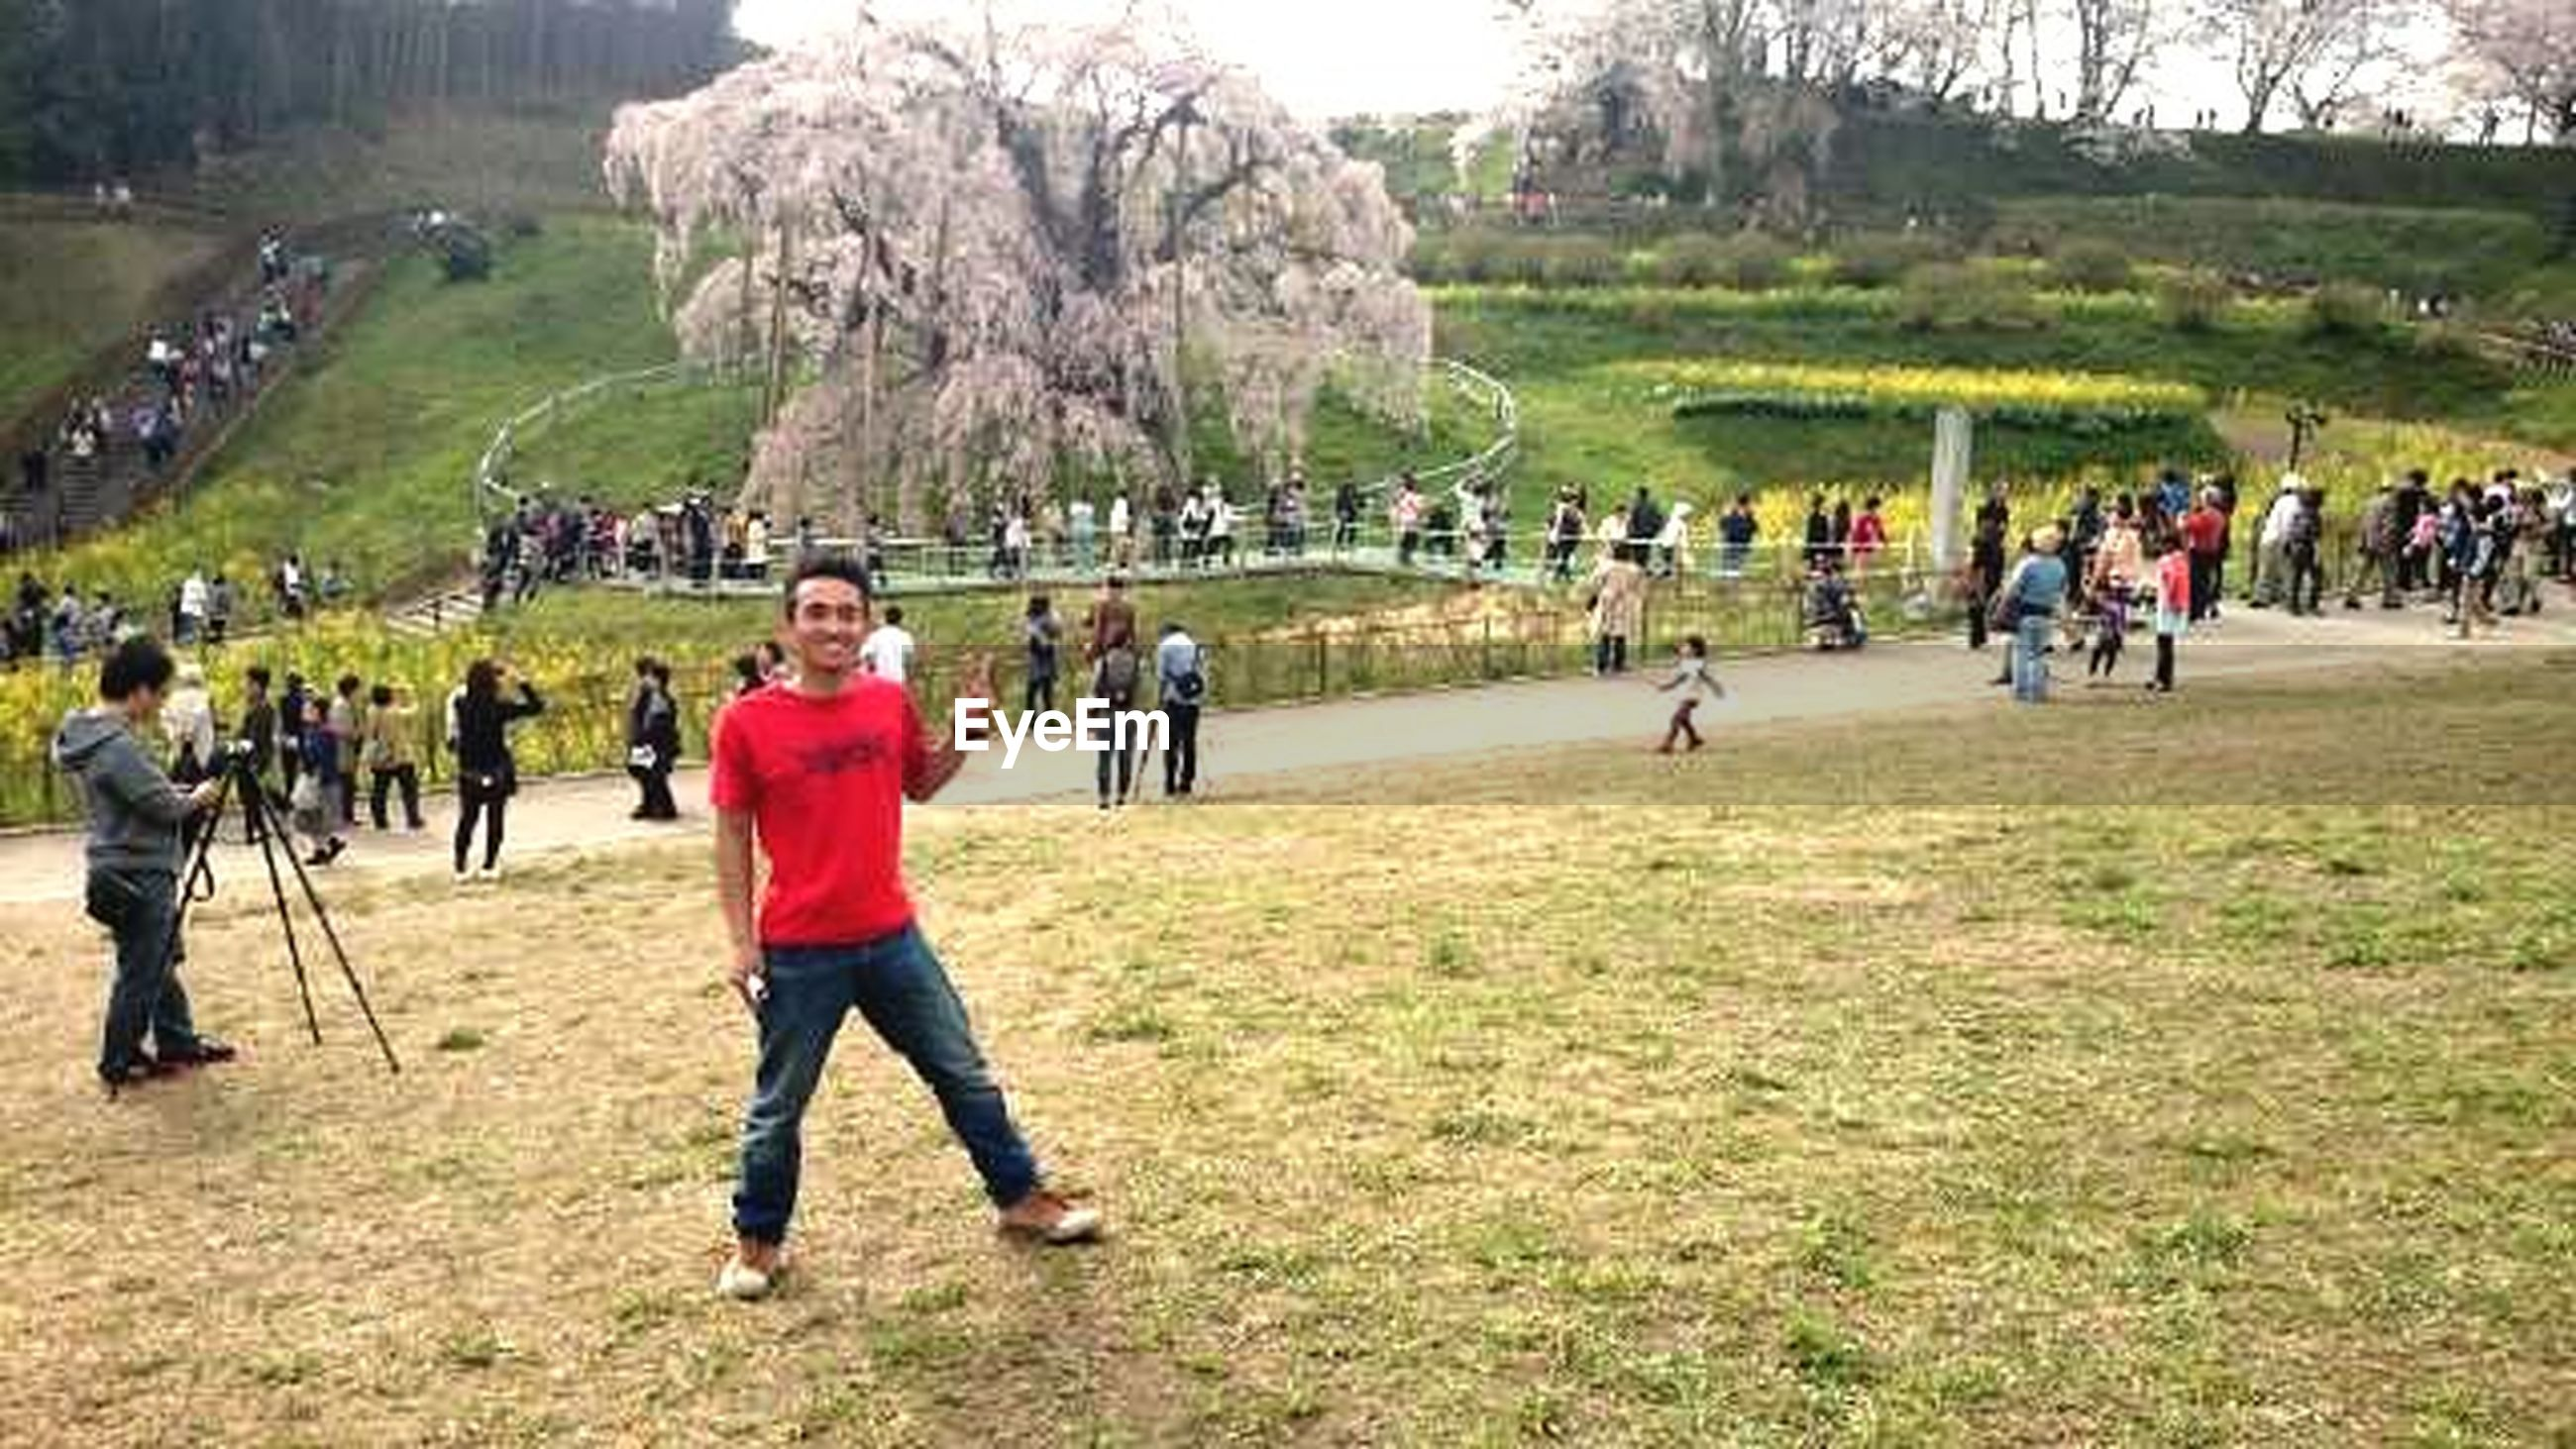 large group of people, grass, leisure activity, lifestyles, men, person, green color, field, tree, full length, sport, mixed age range, park - man made space, grassy, tourist, enjoyment, playing, walking, day